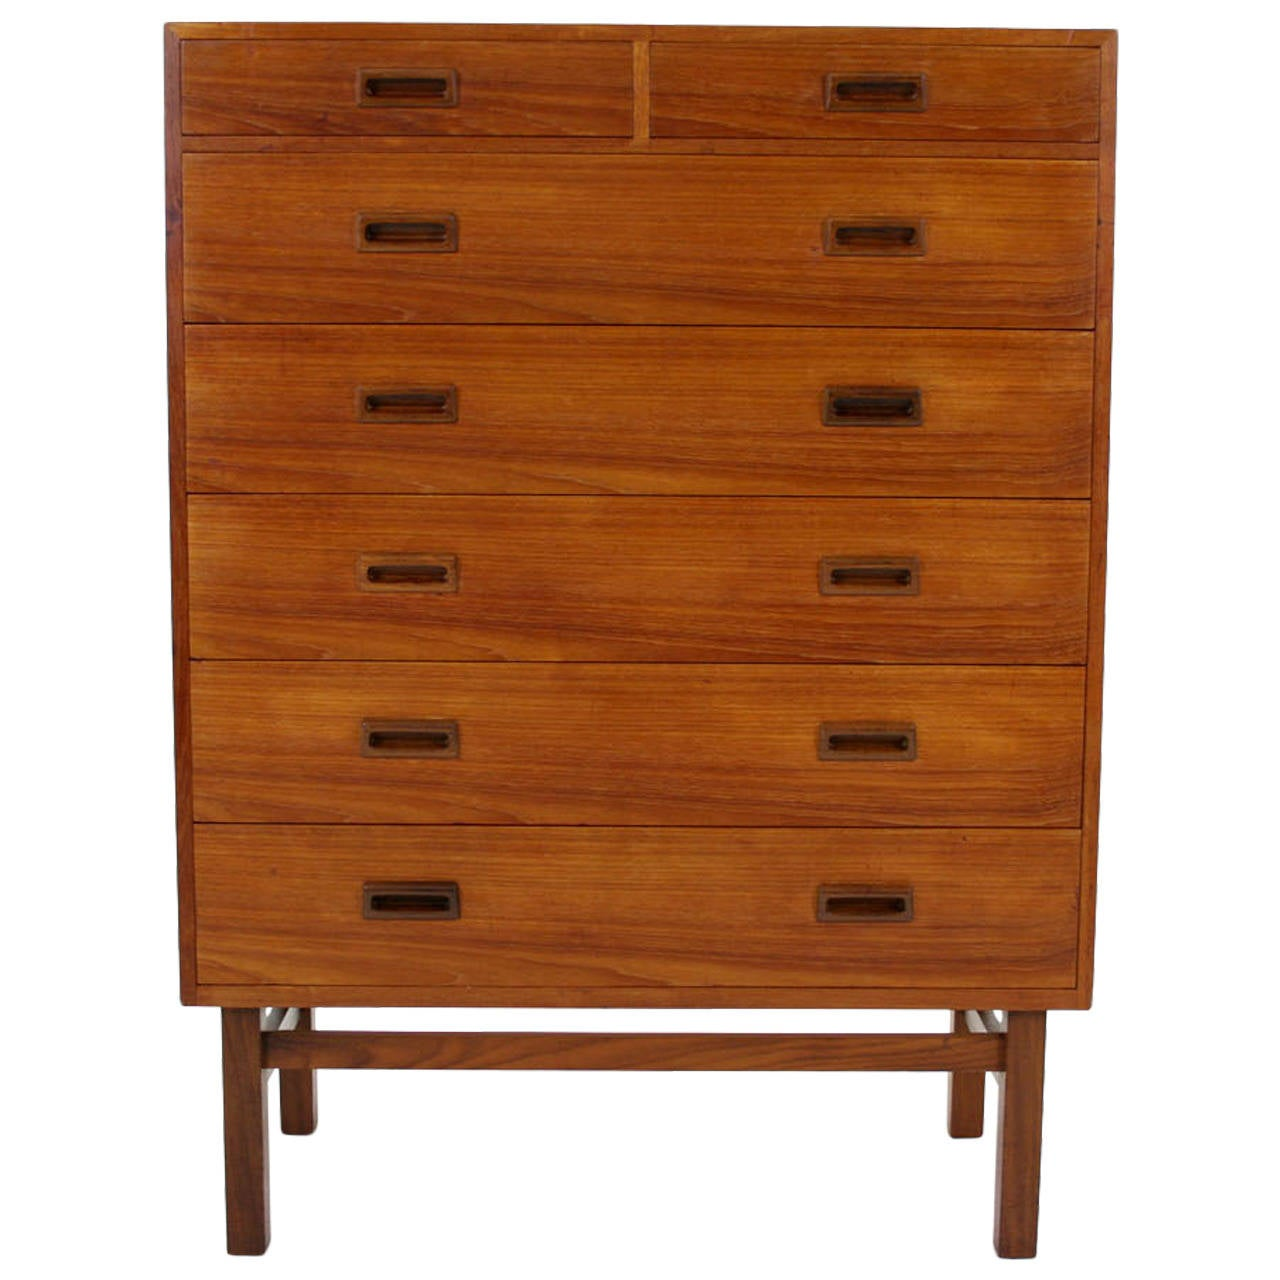 Danish mid century modern teak dresser or chest of drawers